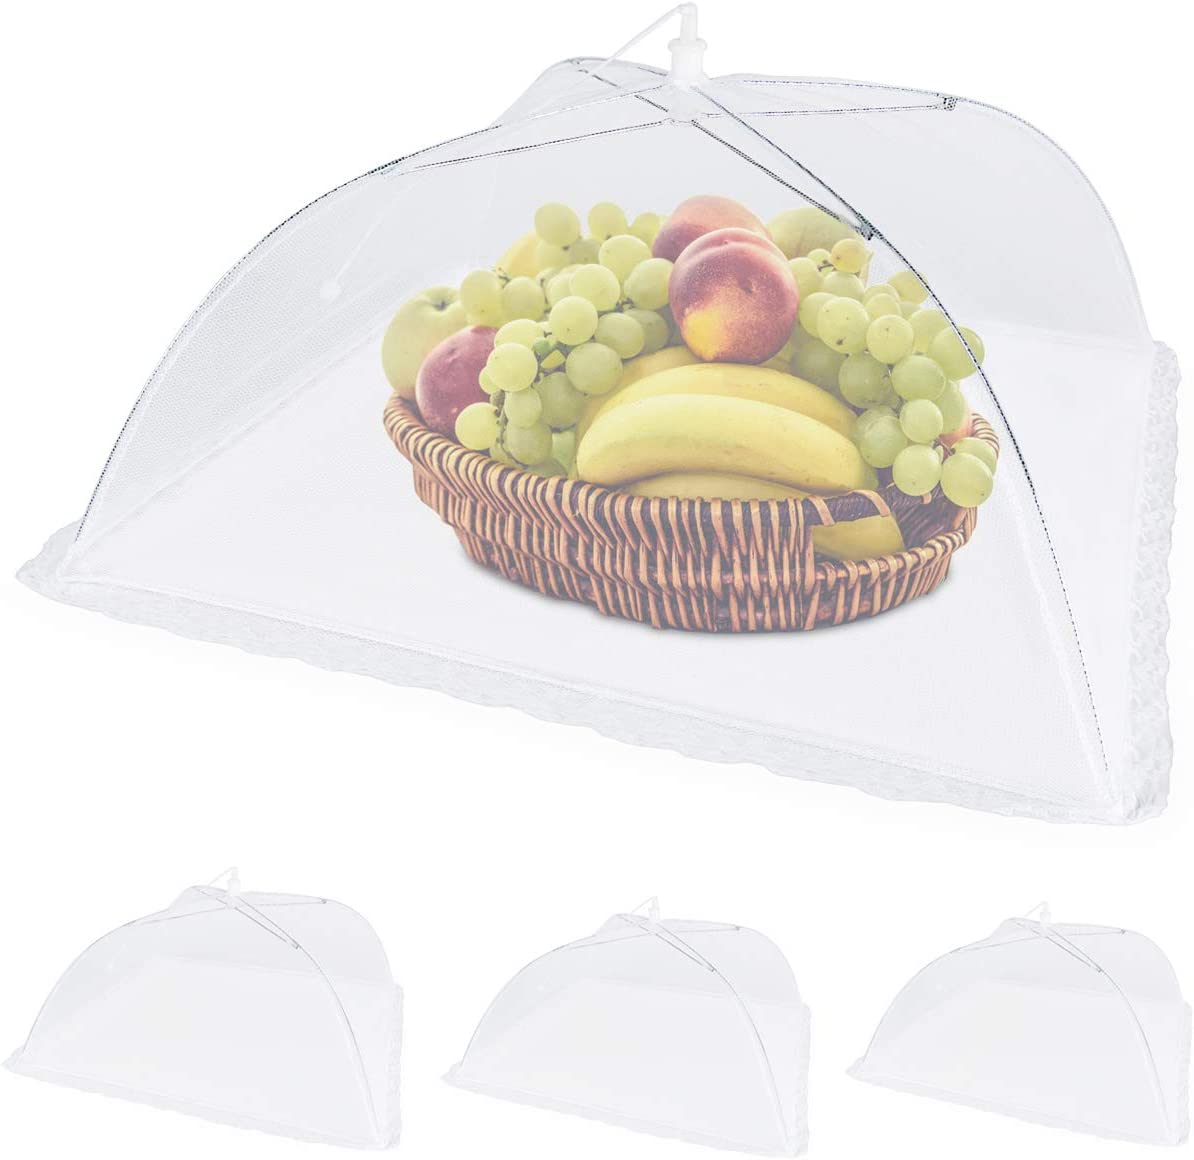 Lemonfilter 4 Pack Pop Up Mesh Screen Food Cover, 17 Inches Reusable and Collapsible Outdoor Umbrella Food Cover Tents Keep Out Flies, Bugs, Mosquitoes